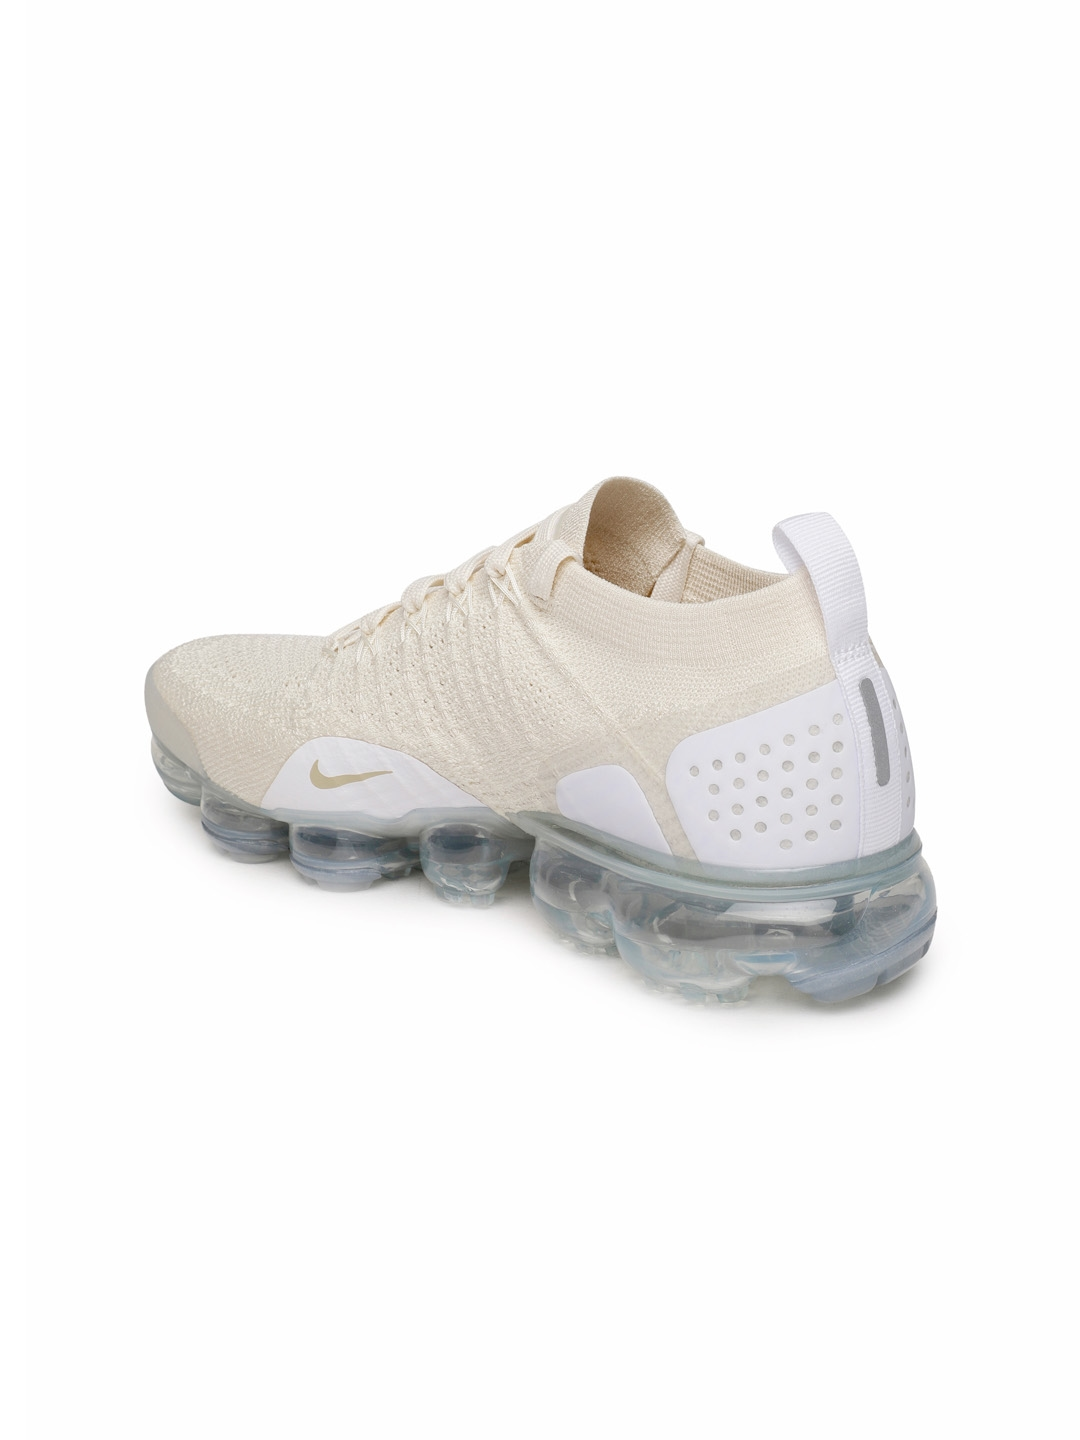 7d3bb4ece62cc Buy Nike Women Cream Coloured AIR VAPORMAX FLYKNIT 2 Running Shoes ...